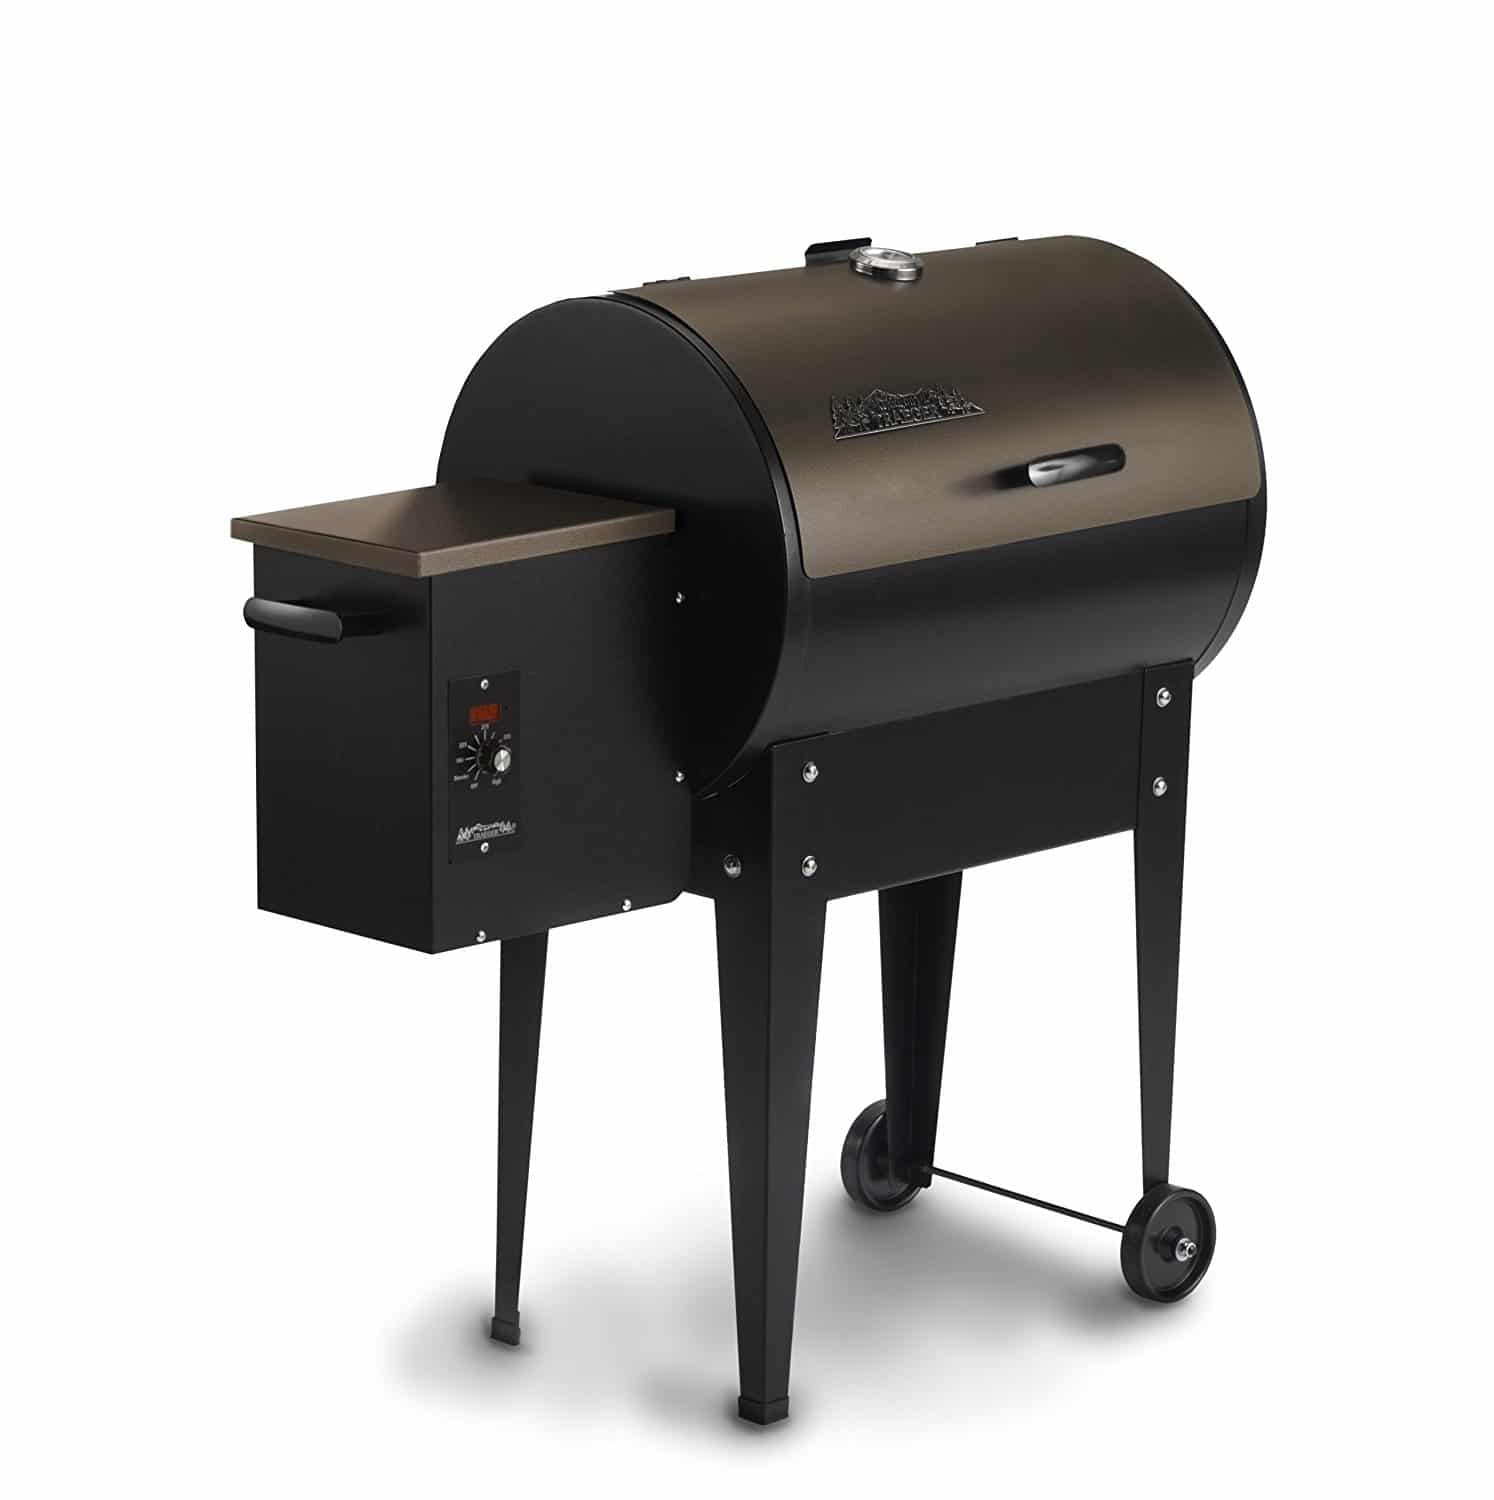 The Best Pellet Grill, Traeger Junior Elite Pellet Grill Overview